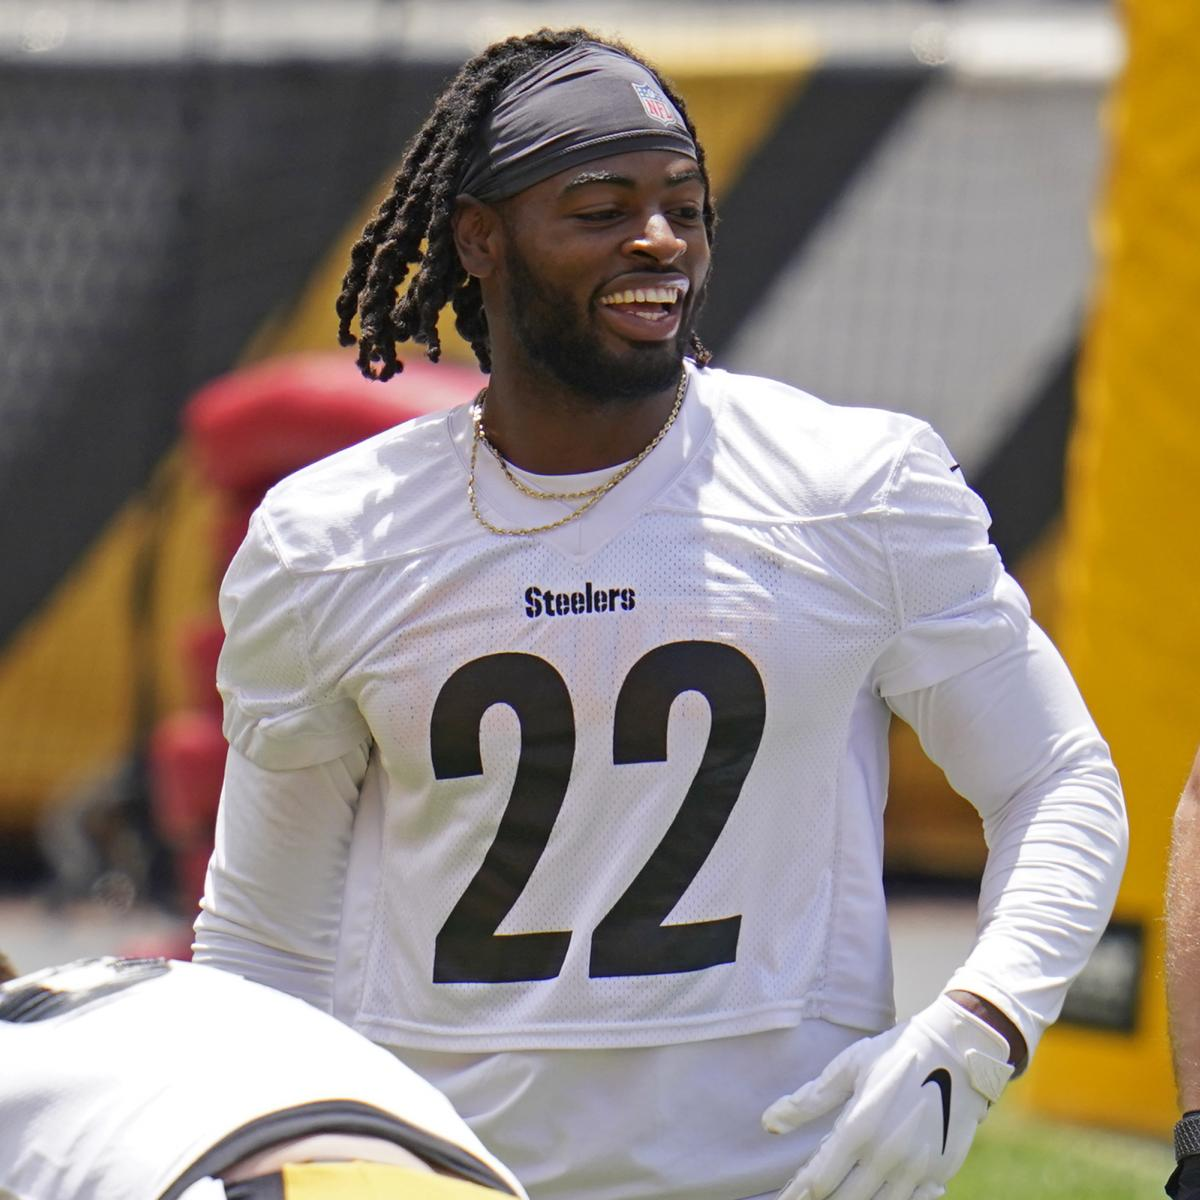 Fantasy Football 2021: Early Mock Draft and Rankings Before Training Camps